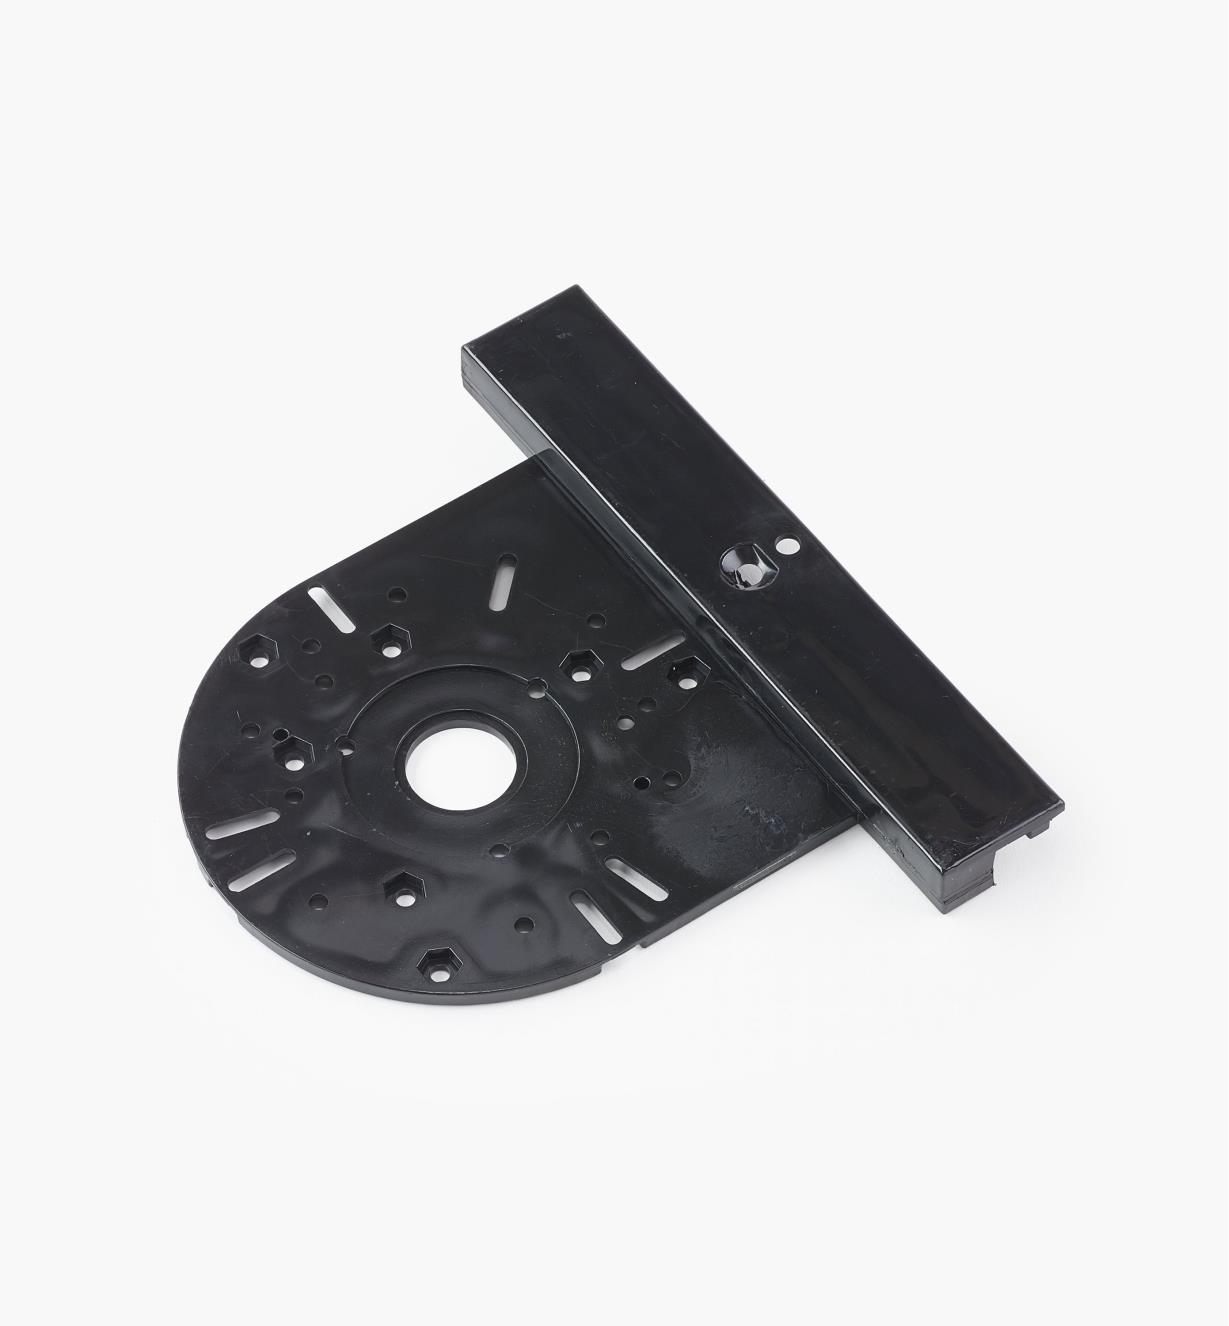 17F0361 - Router Plate